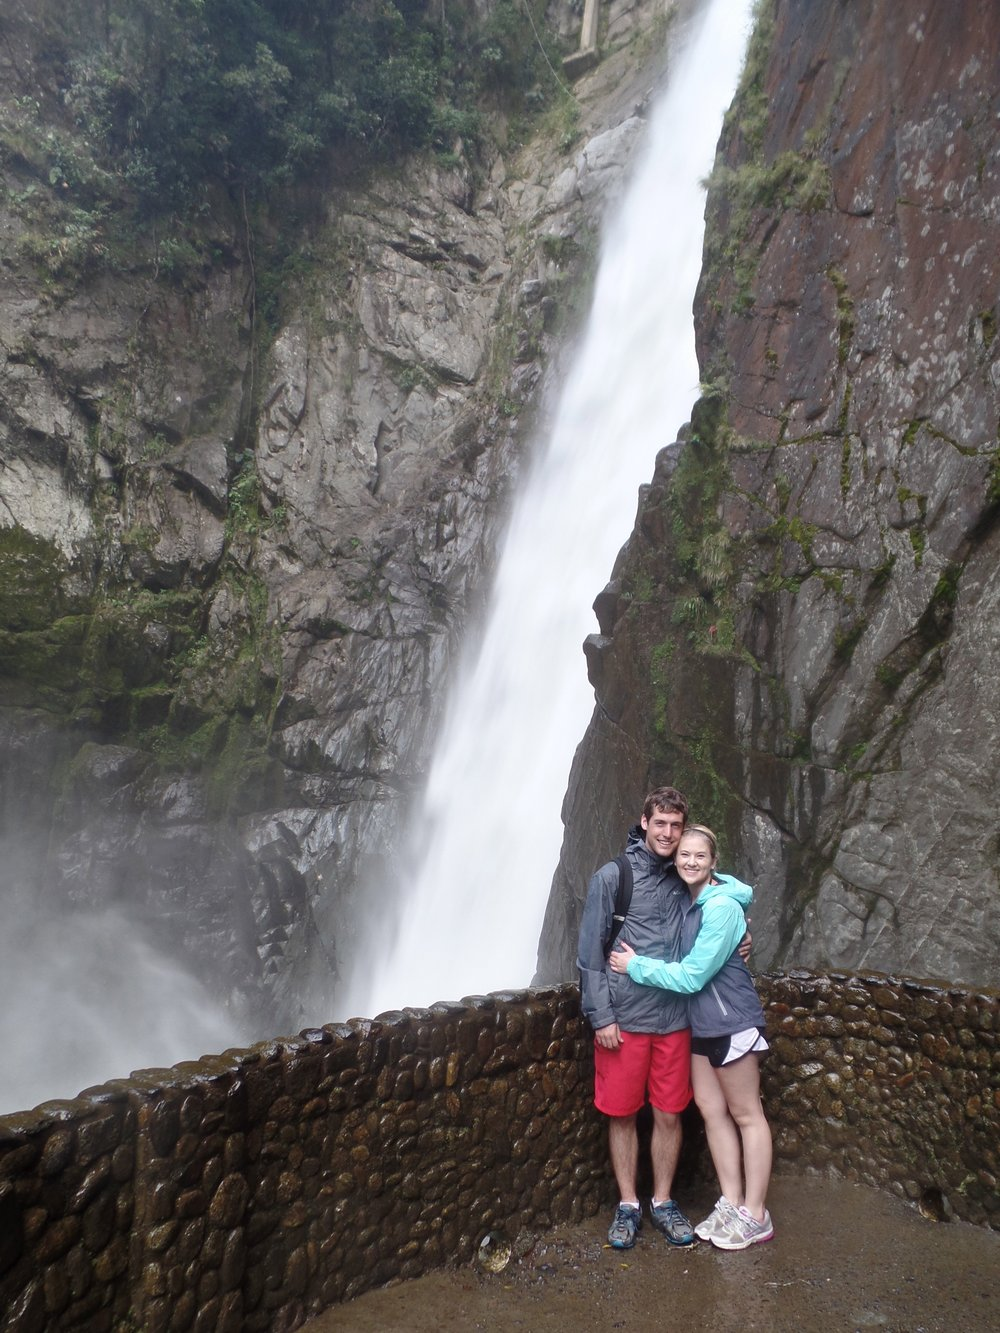 Kayla and Daniel McMullen in front of a waterfall